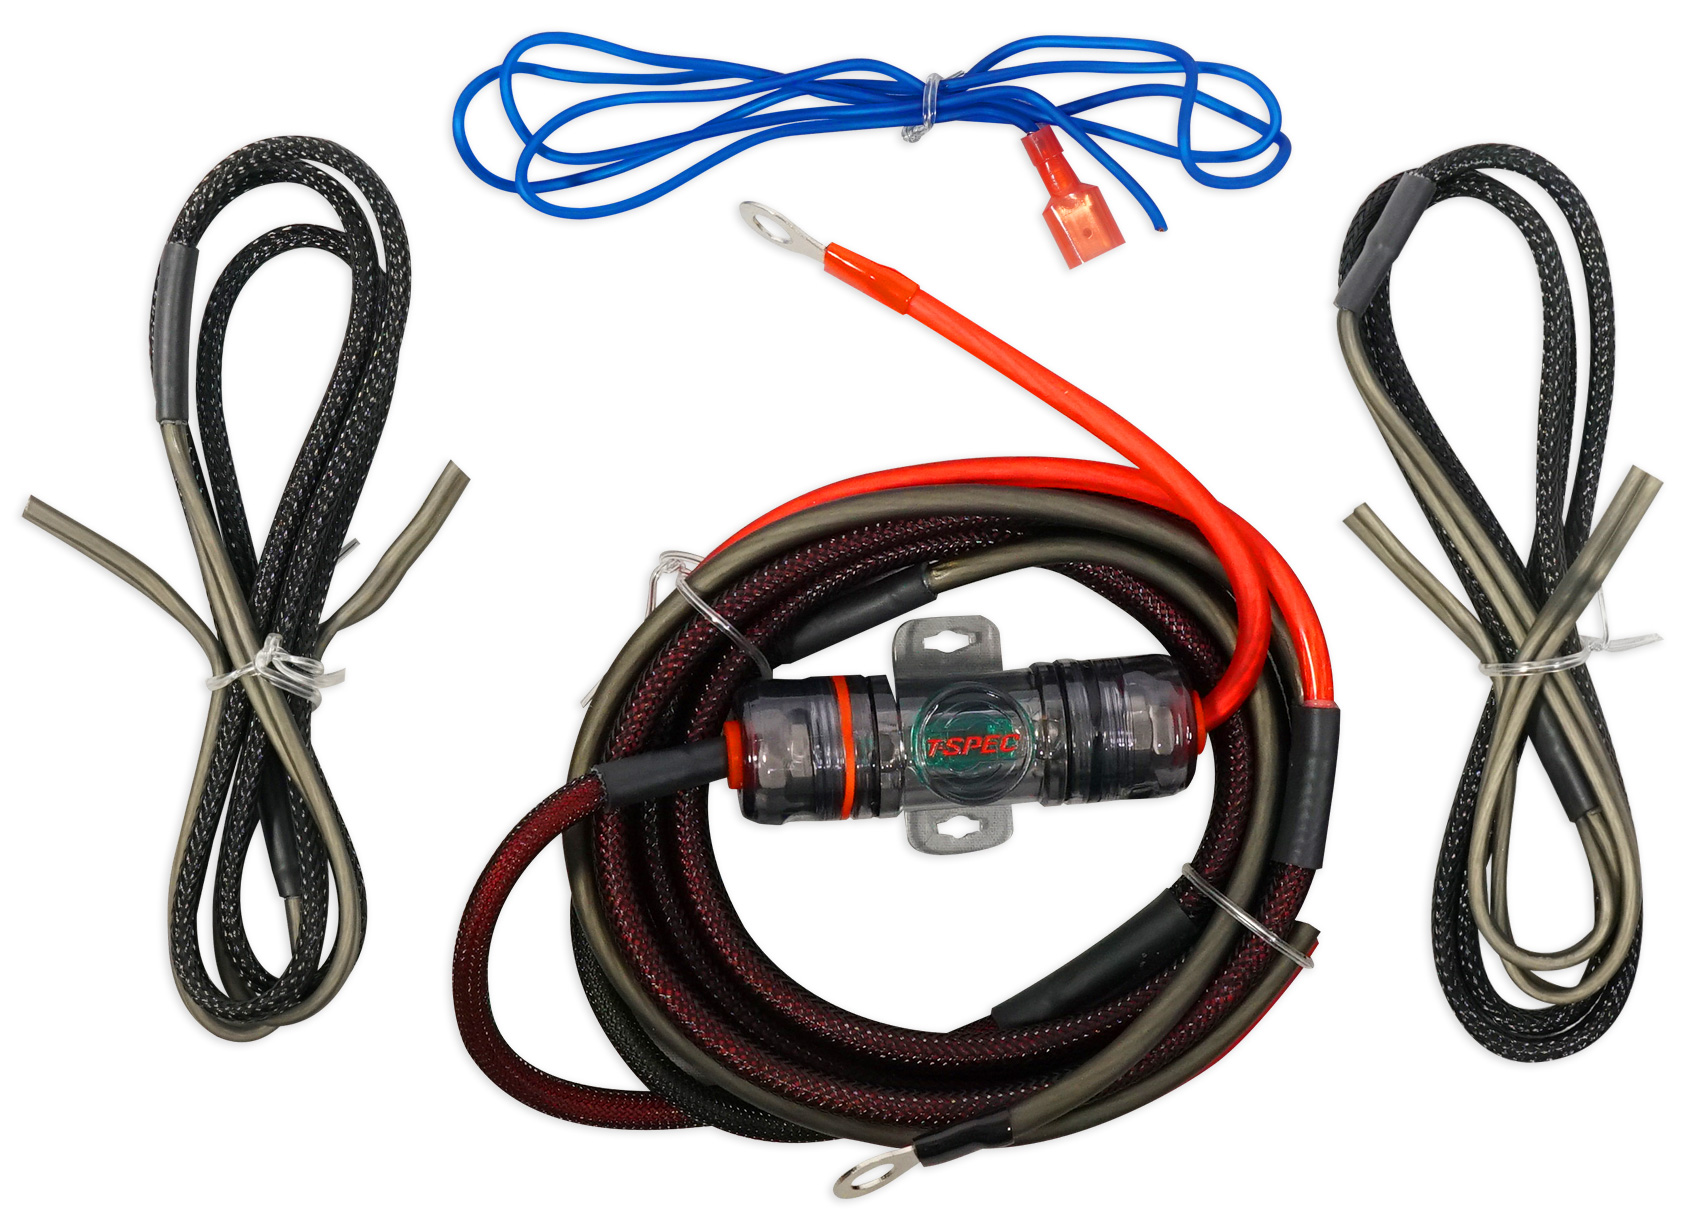 How To Wire Amp On Utv - Wiring Diagram